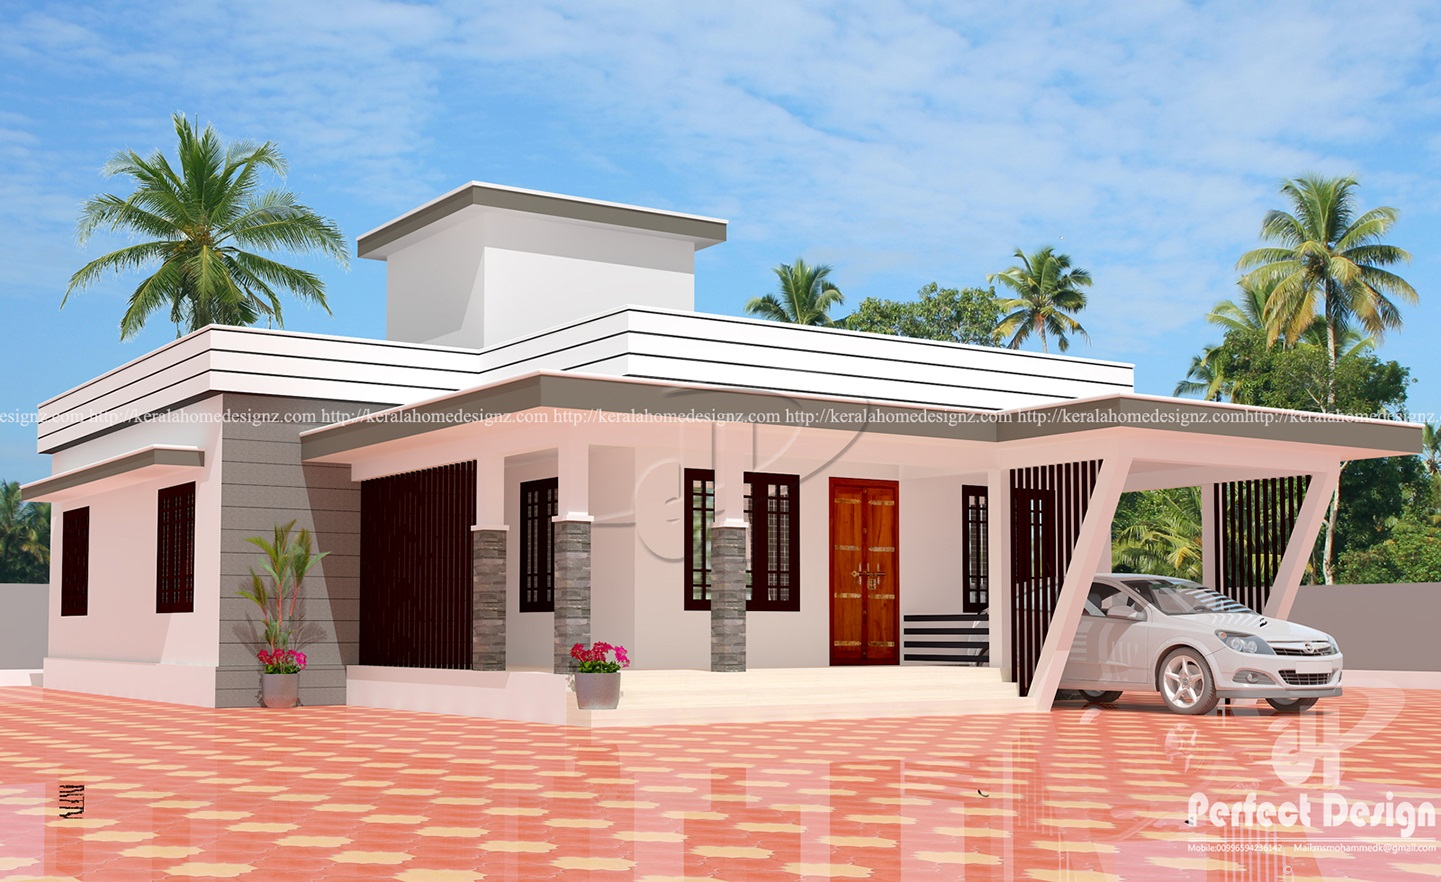 3 bedroom modern flat roof house layout kerala home design for 3 bedroom contemporary house plans